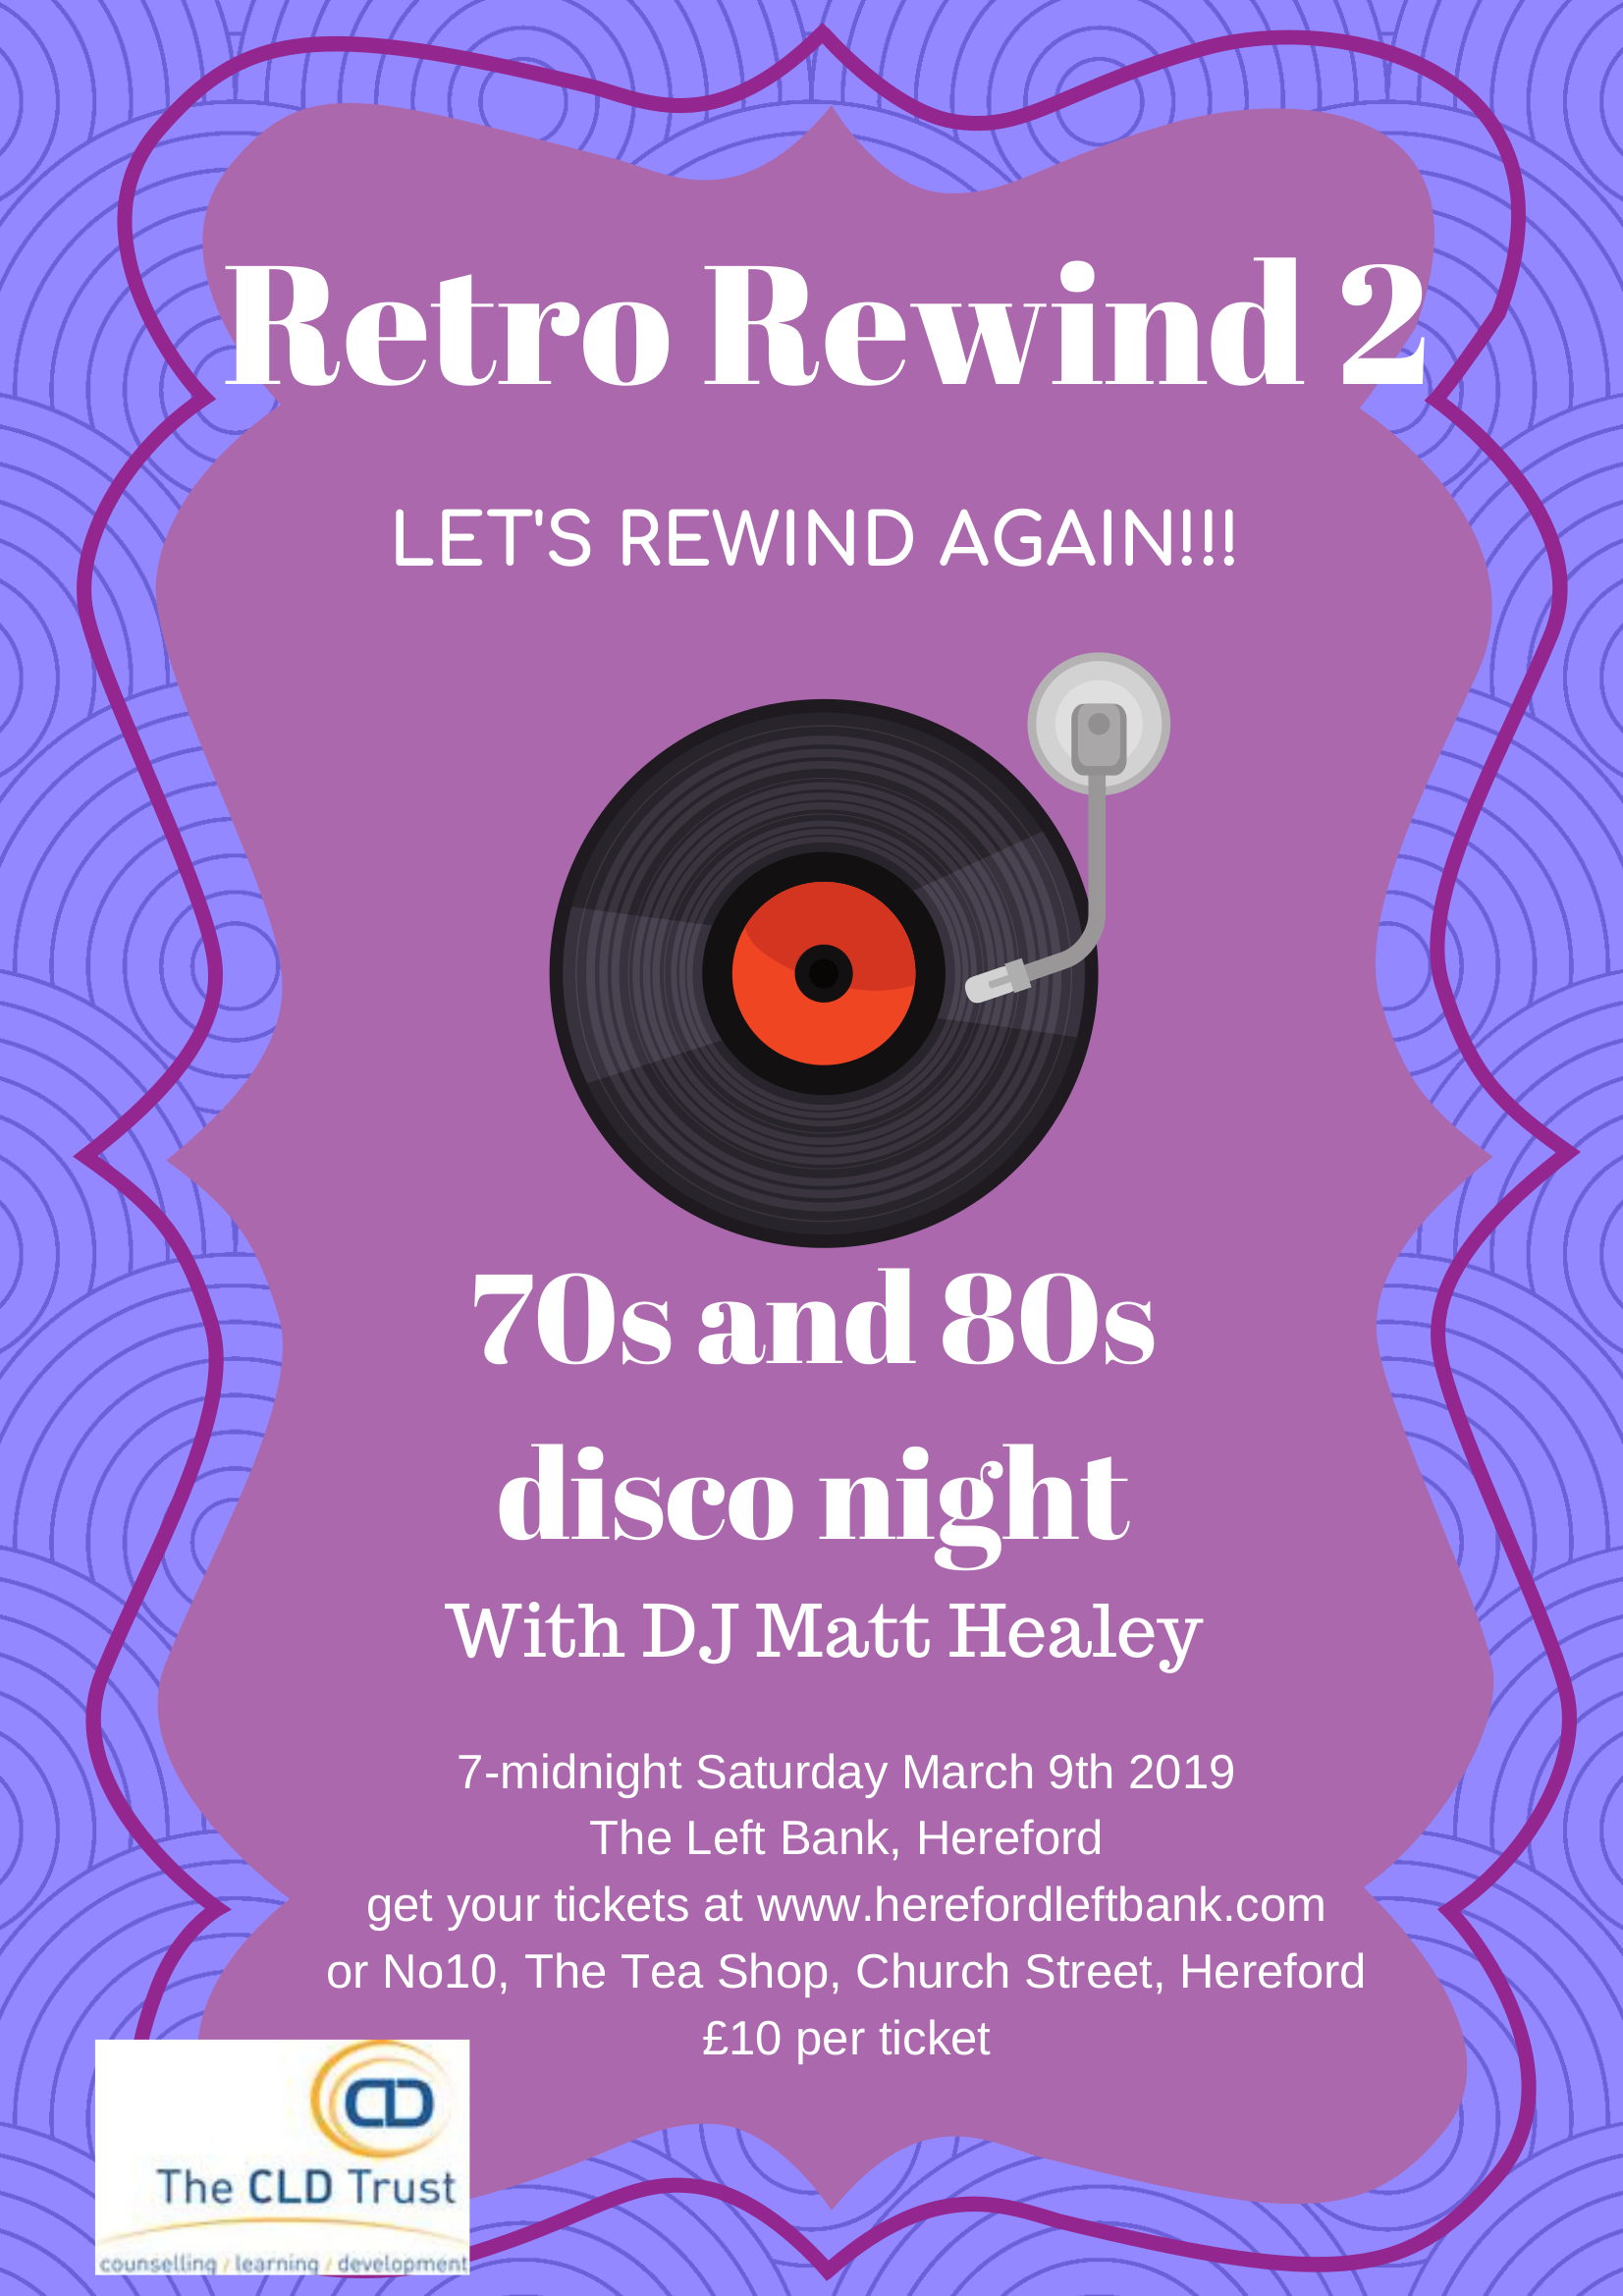 Retro Rewind 2 with DJ Matt Healey on 9th March 2019 at The Left Bank